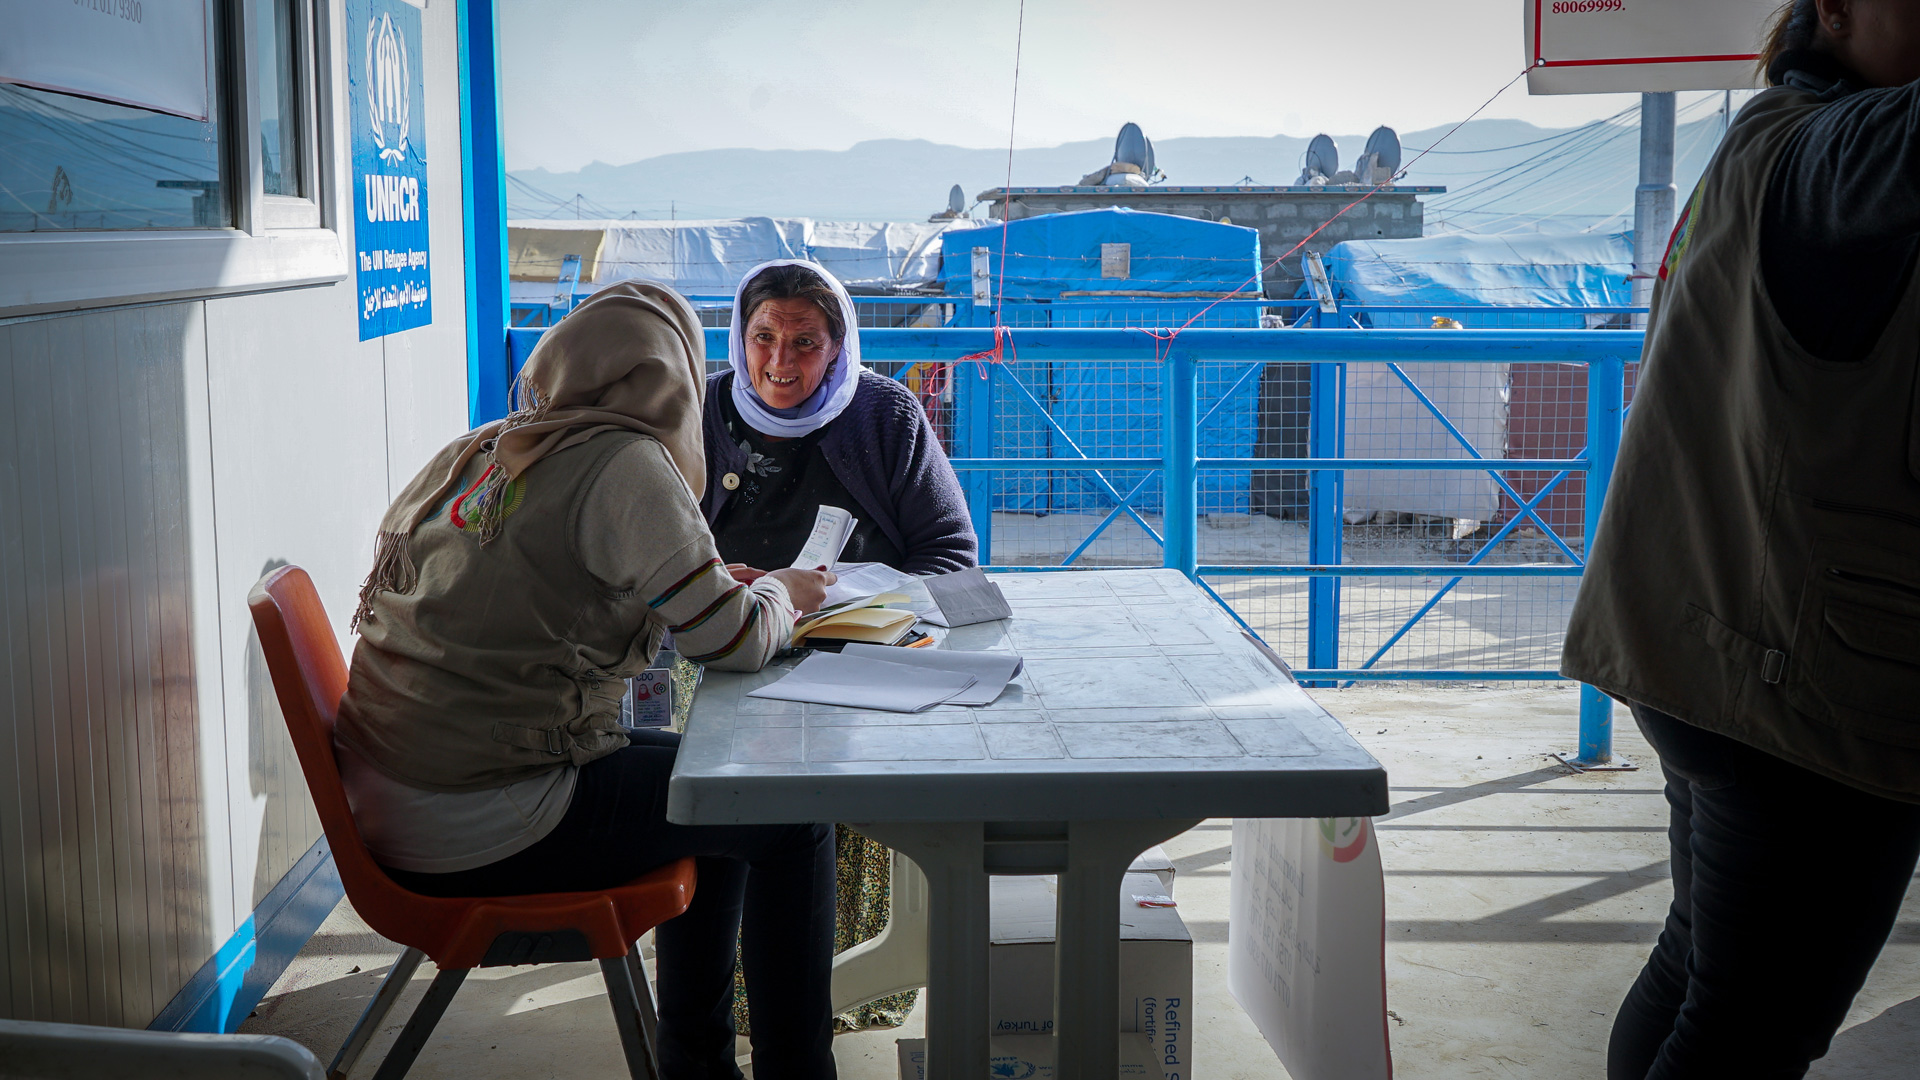 A representative from the UNHCR meets with a woman at a camp for internally displaced persons in Iraq.